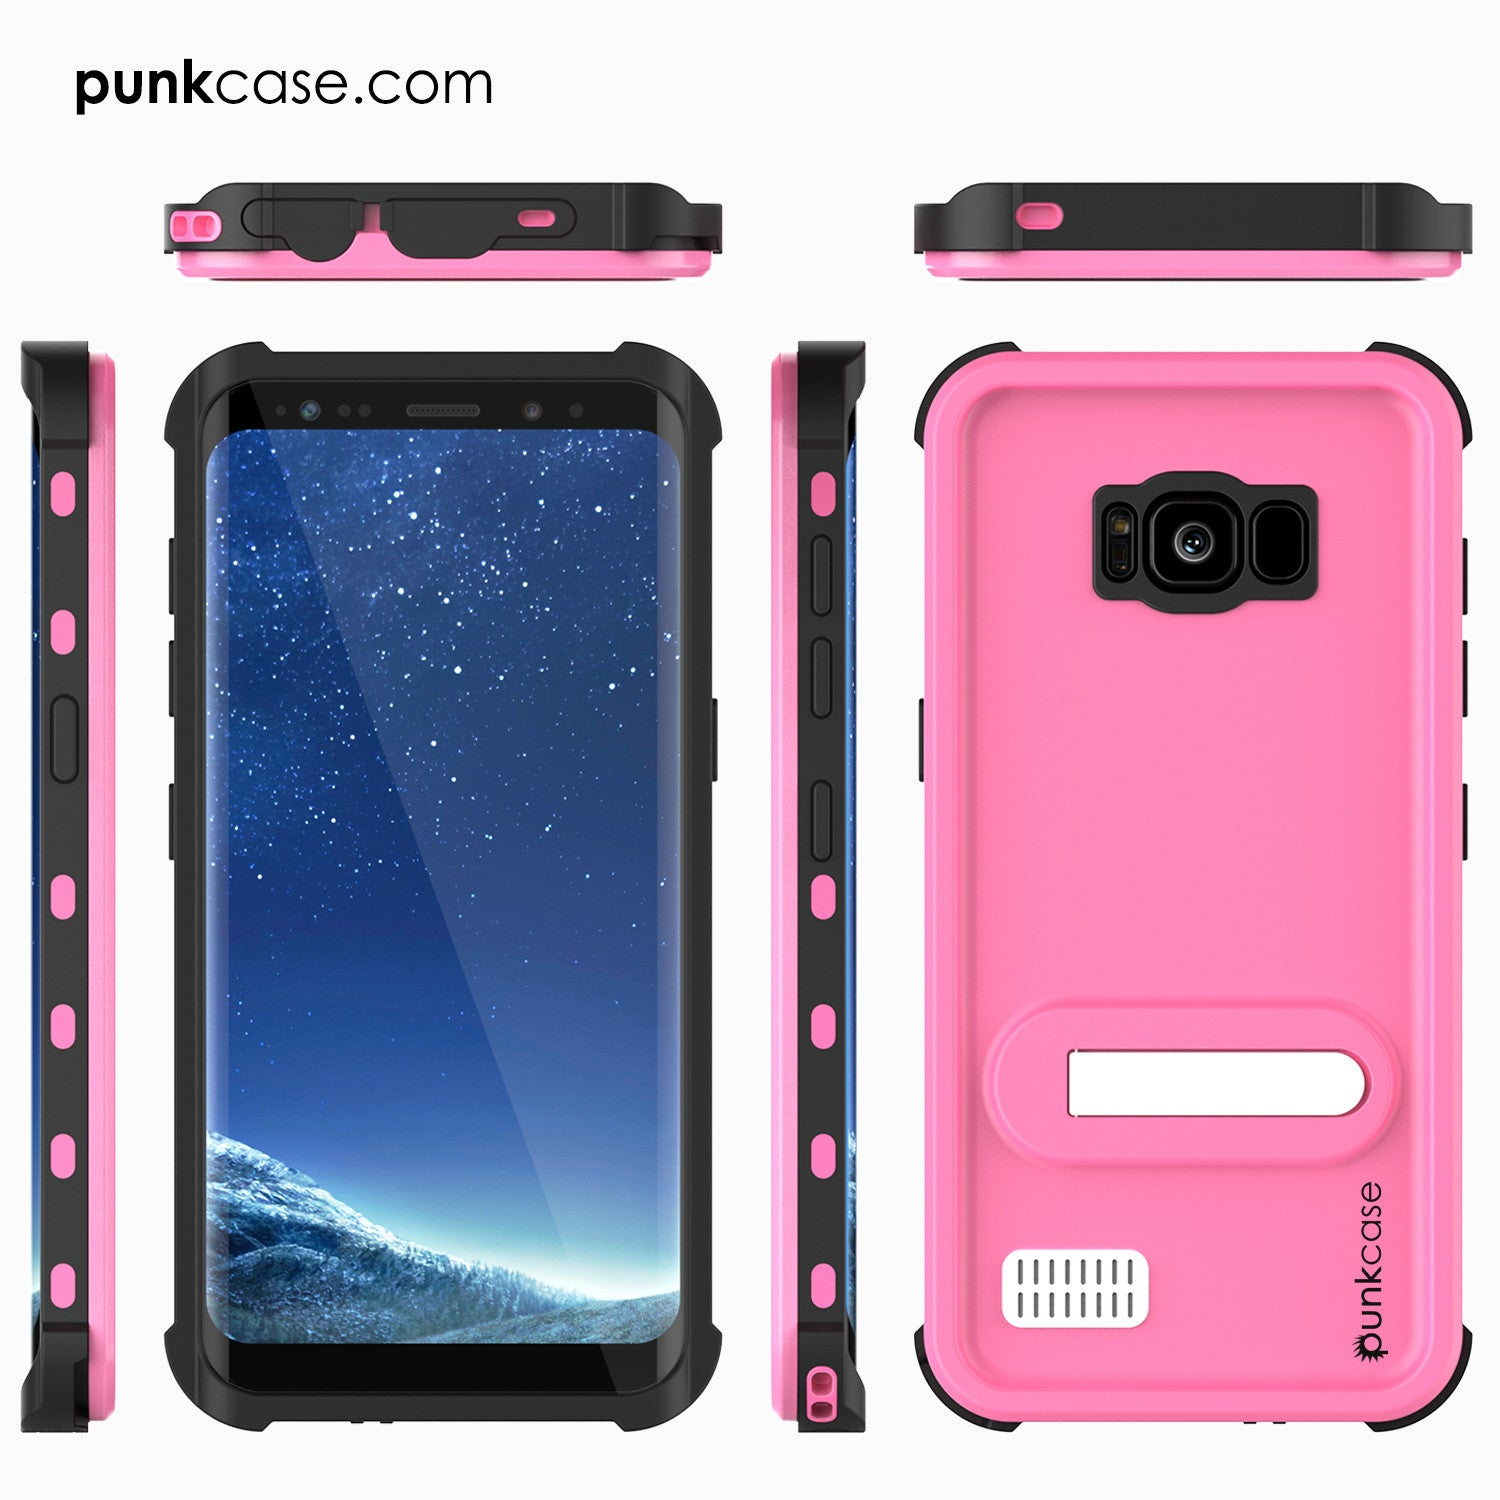 Galaxy S8 Plus Waterproof Case, Punkcase [KickStud Series] [Slim Fit] [IP68 Certified] [Shockproof] [Snowproof] Armor Cover [PINK]